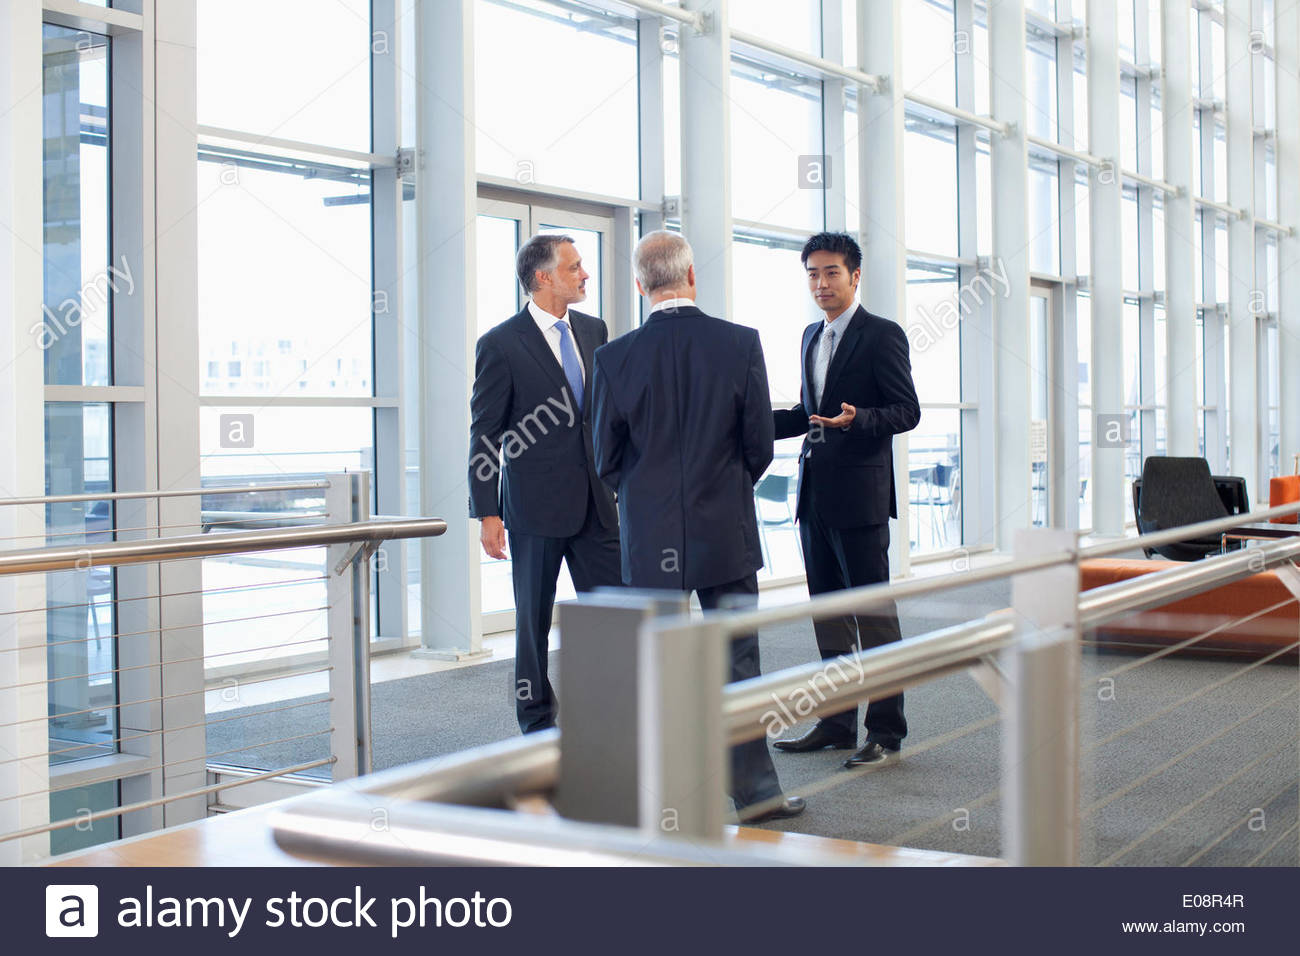 Business people meeting at window in office lobby - Stock Image